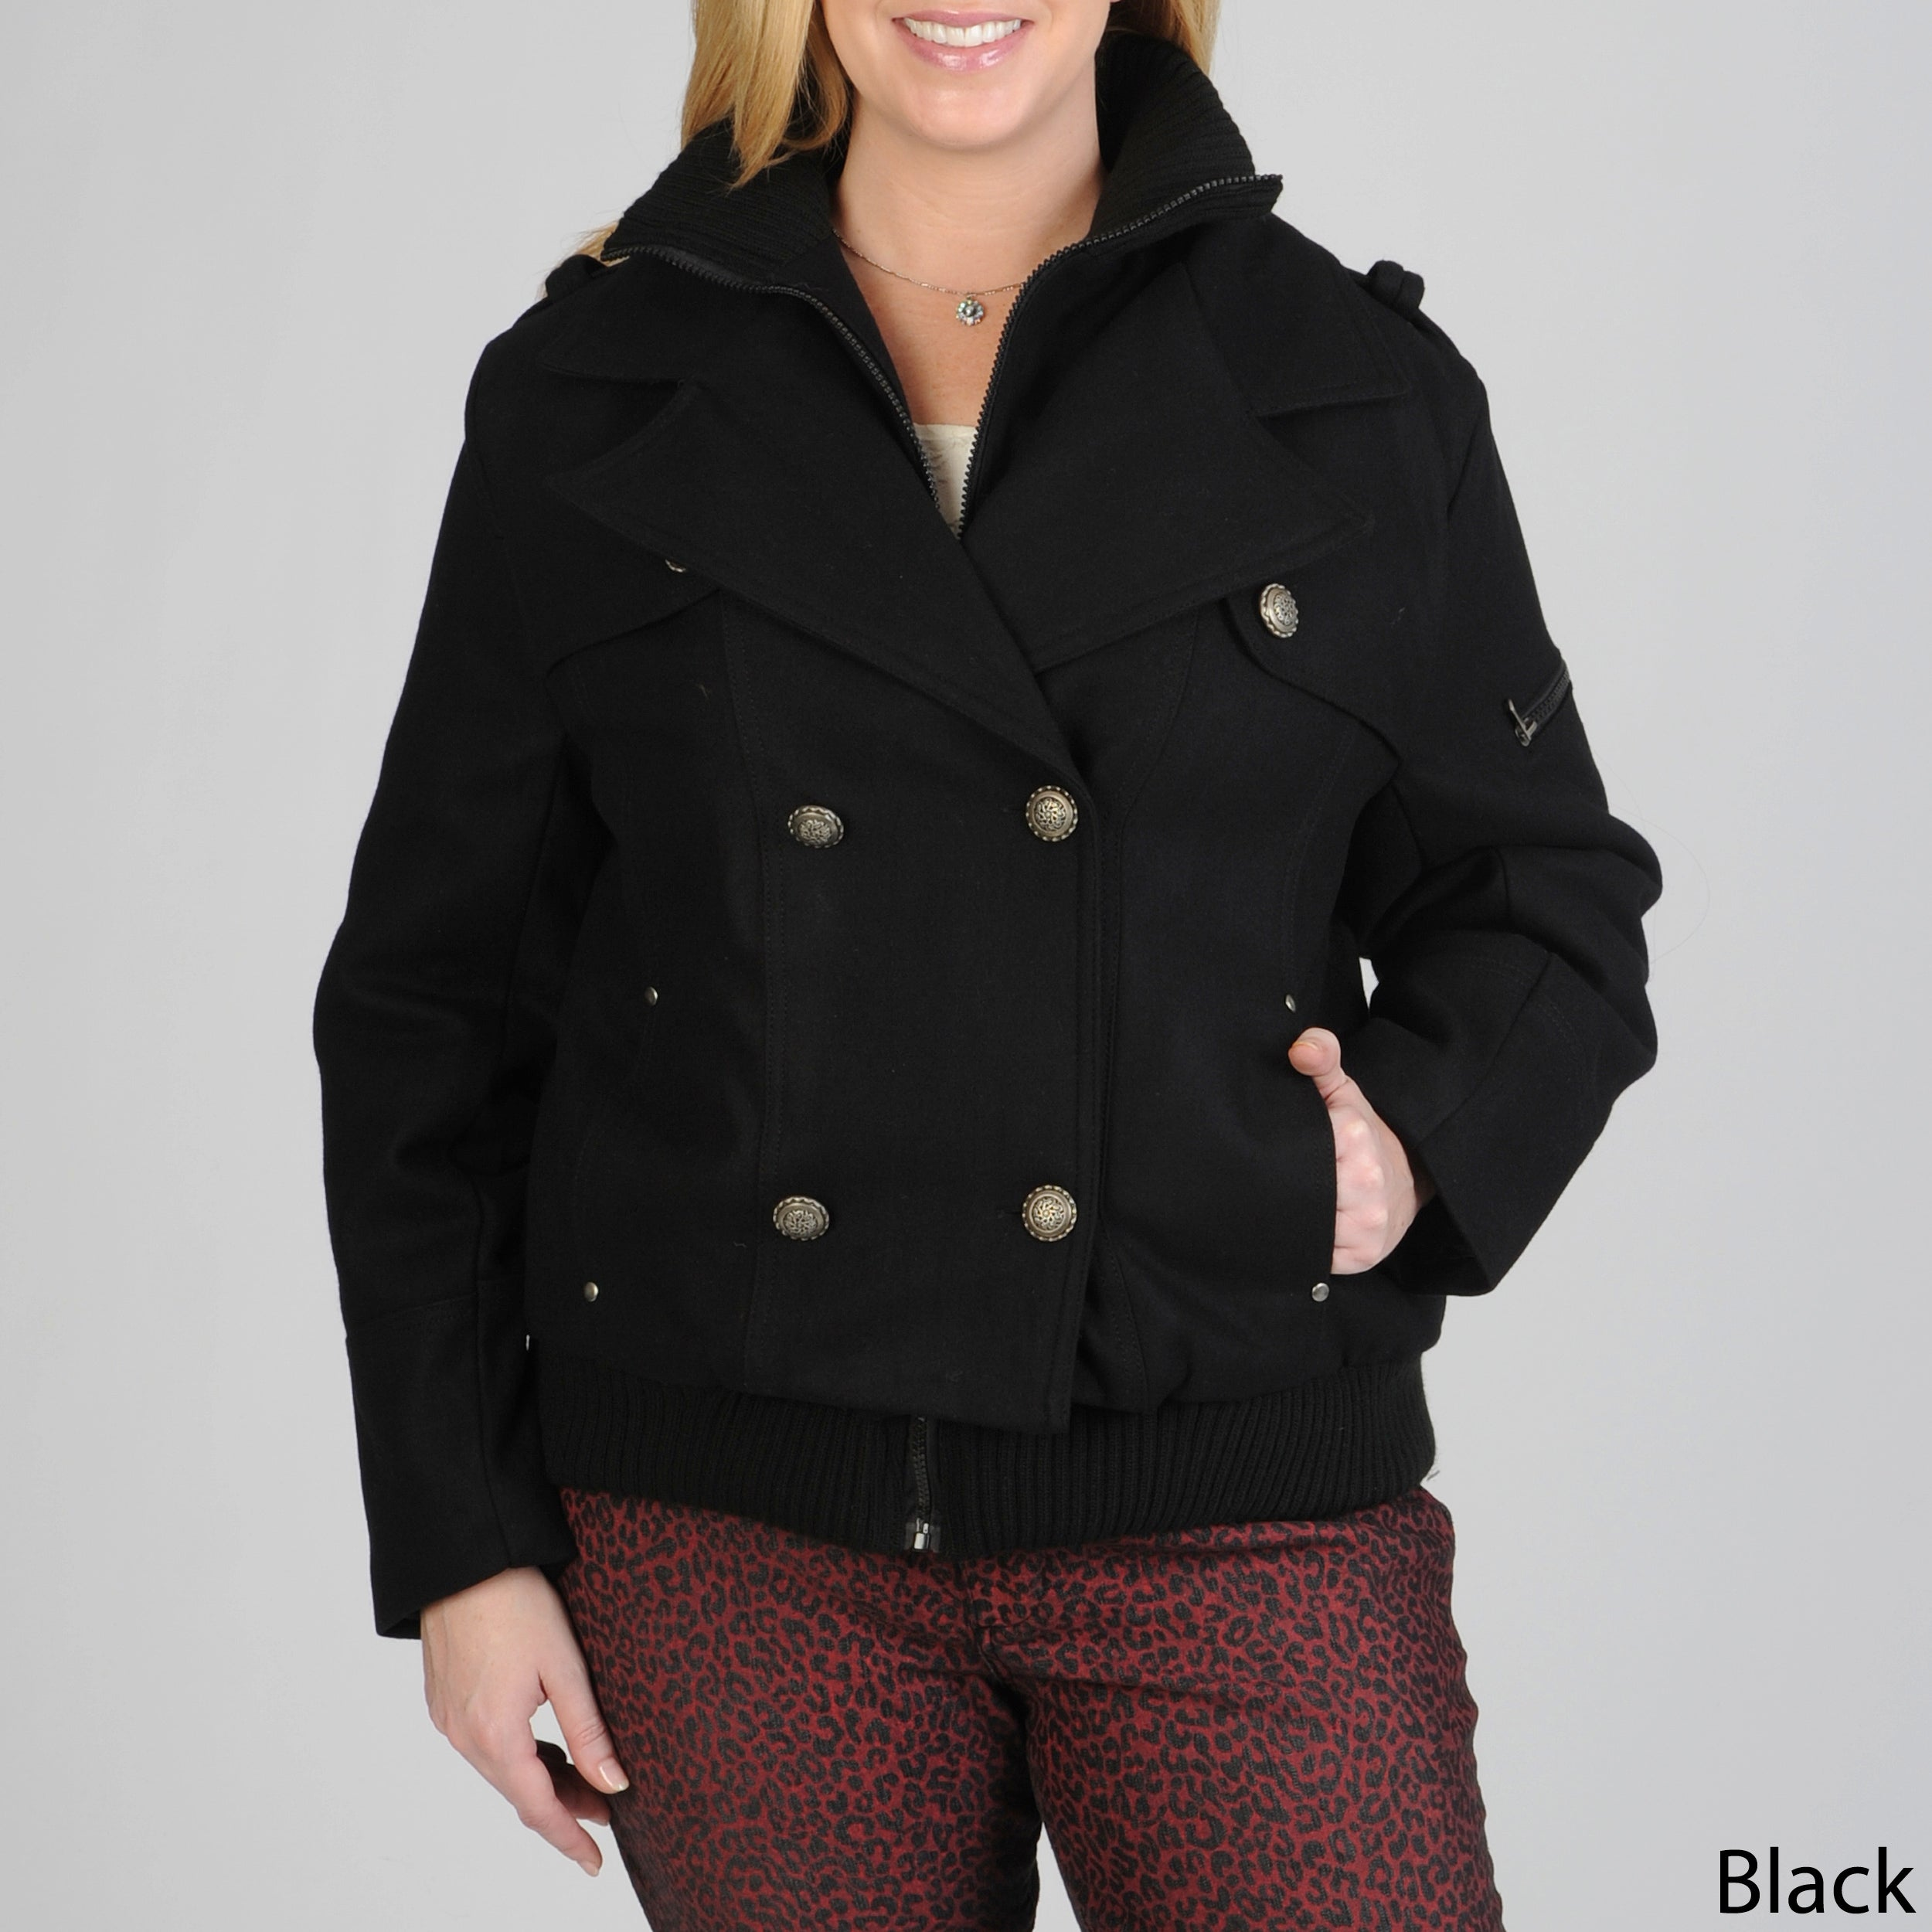 feda292b62f68 Shop Excelled Women s Plus Size Double-breasted Wool-blend Peacoat - Free  Shipping Today - Overstock - 6293914